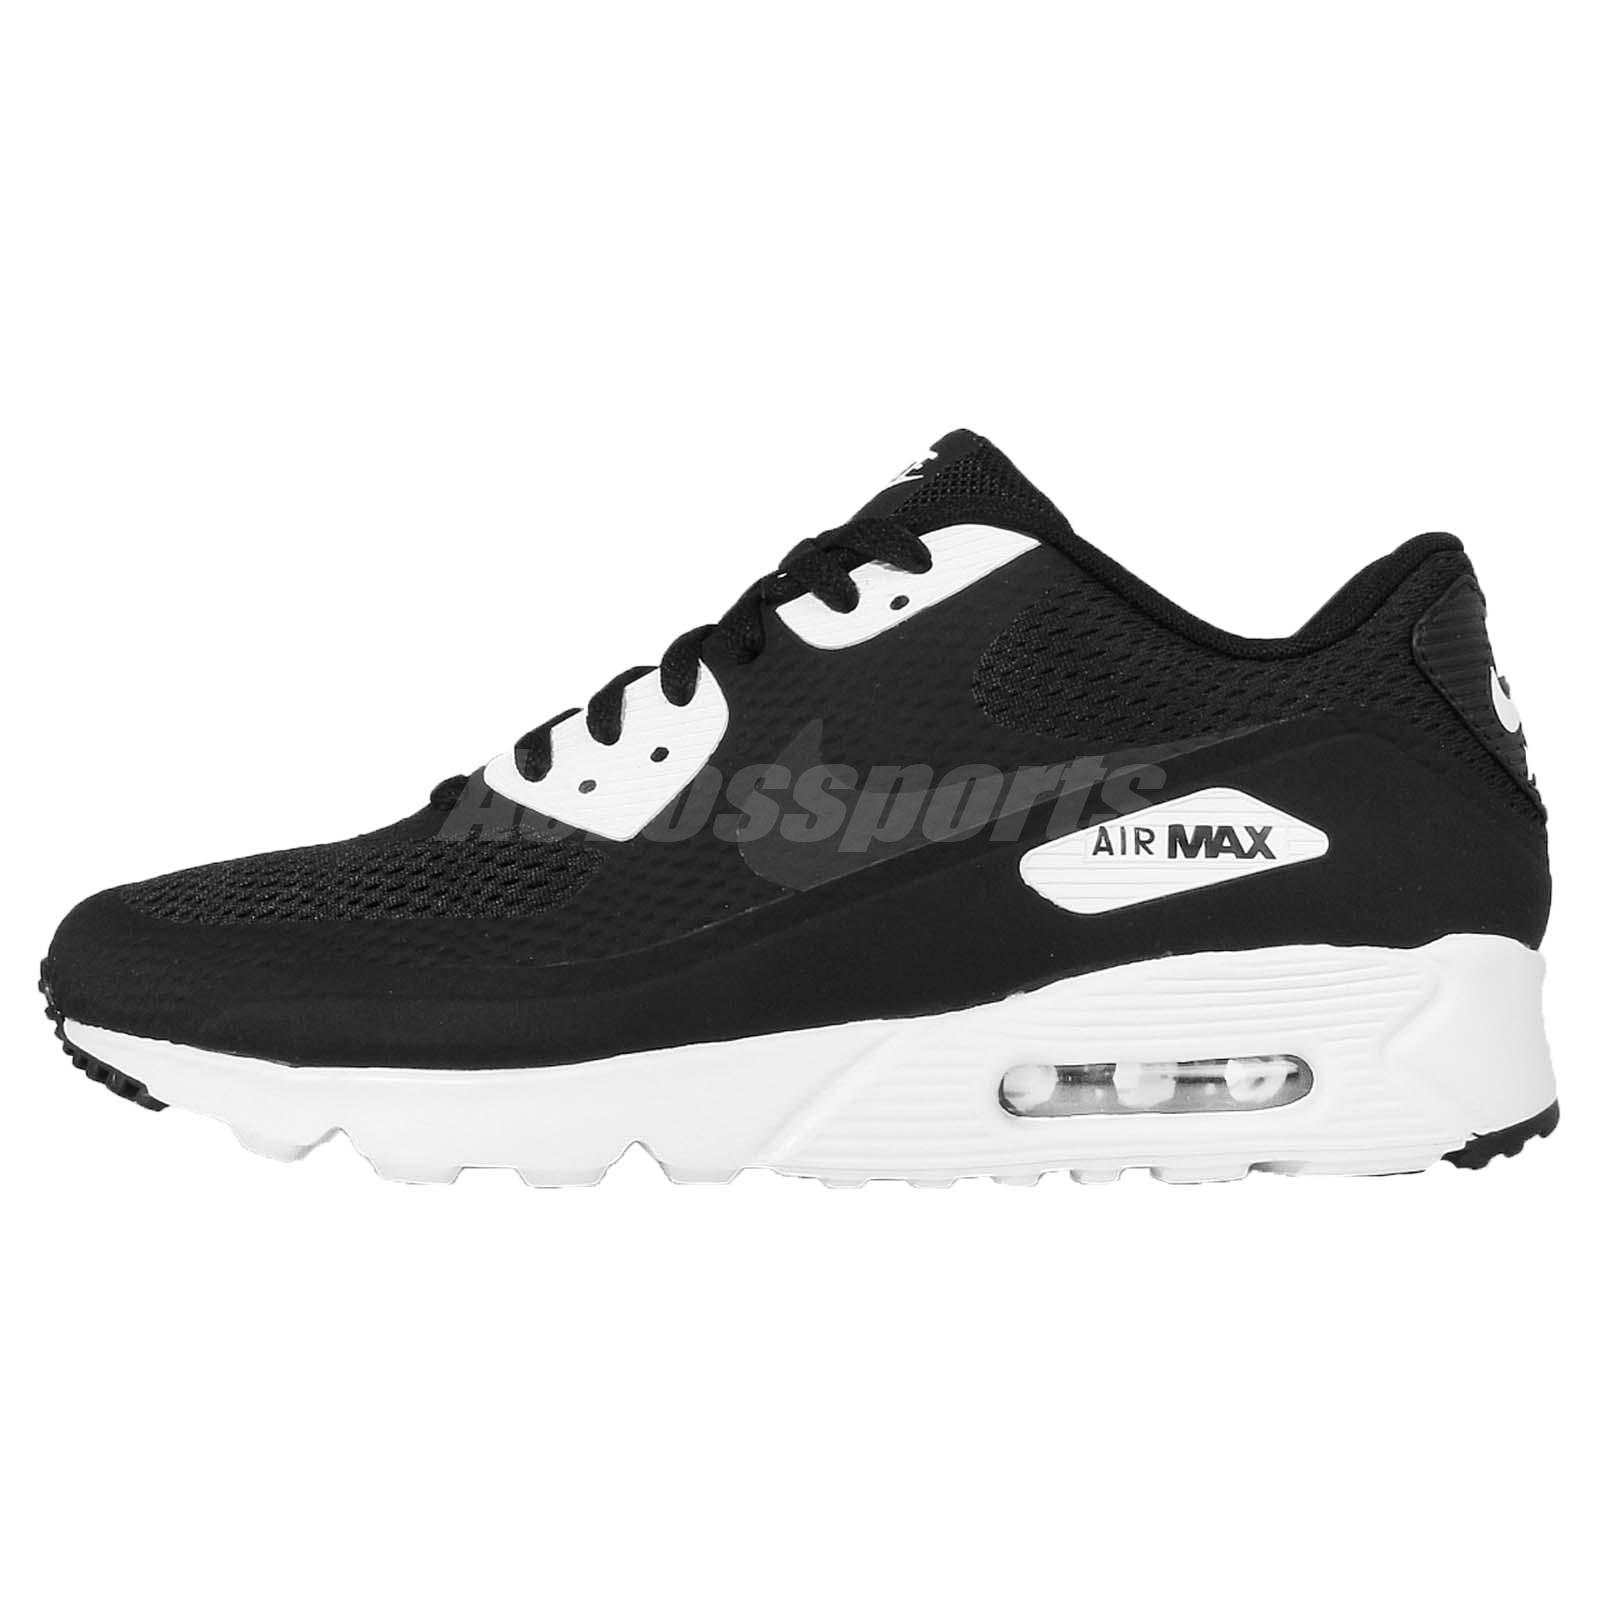 Nike Air Max 90 Ultra Essential Black White NSW Mens Running Shoes 819474-001